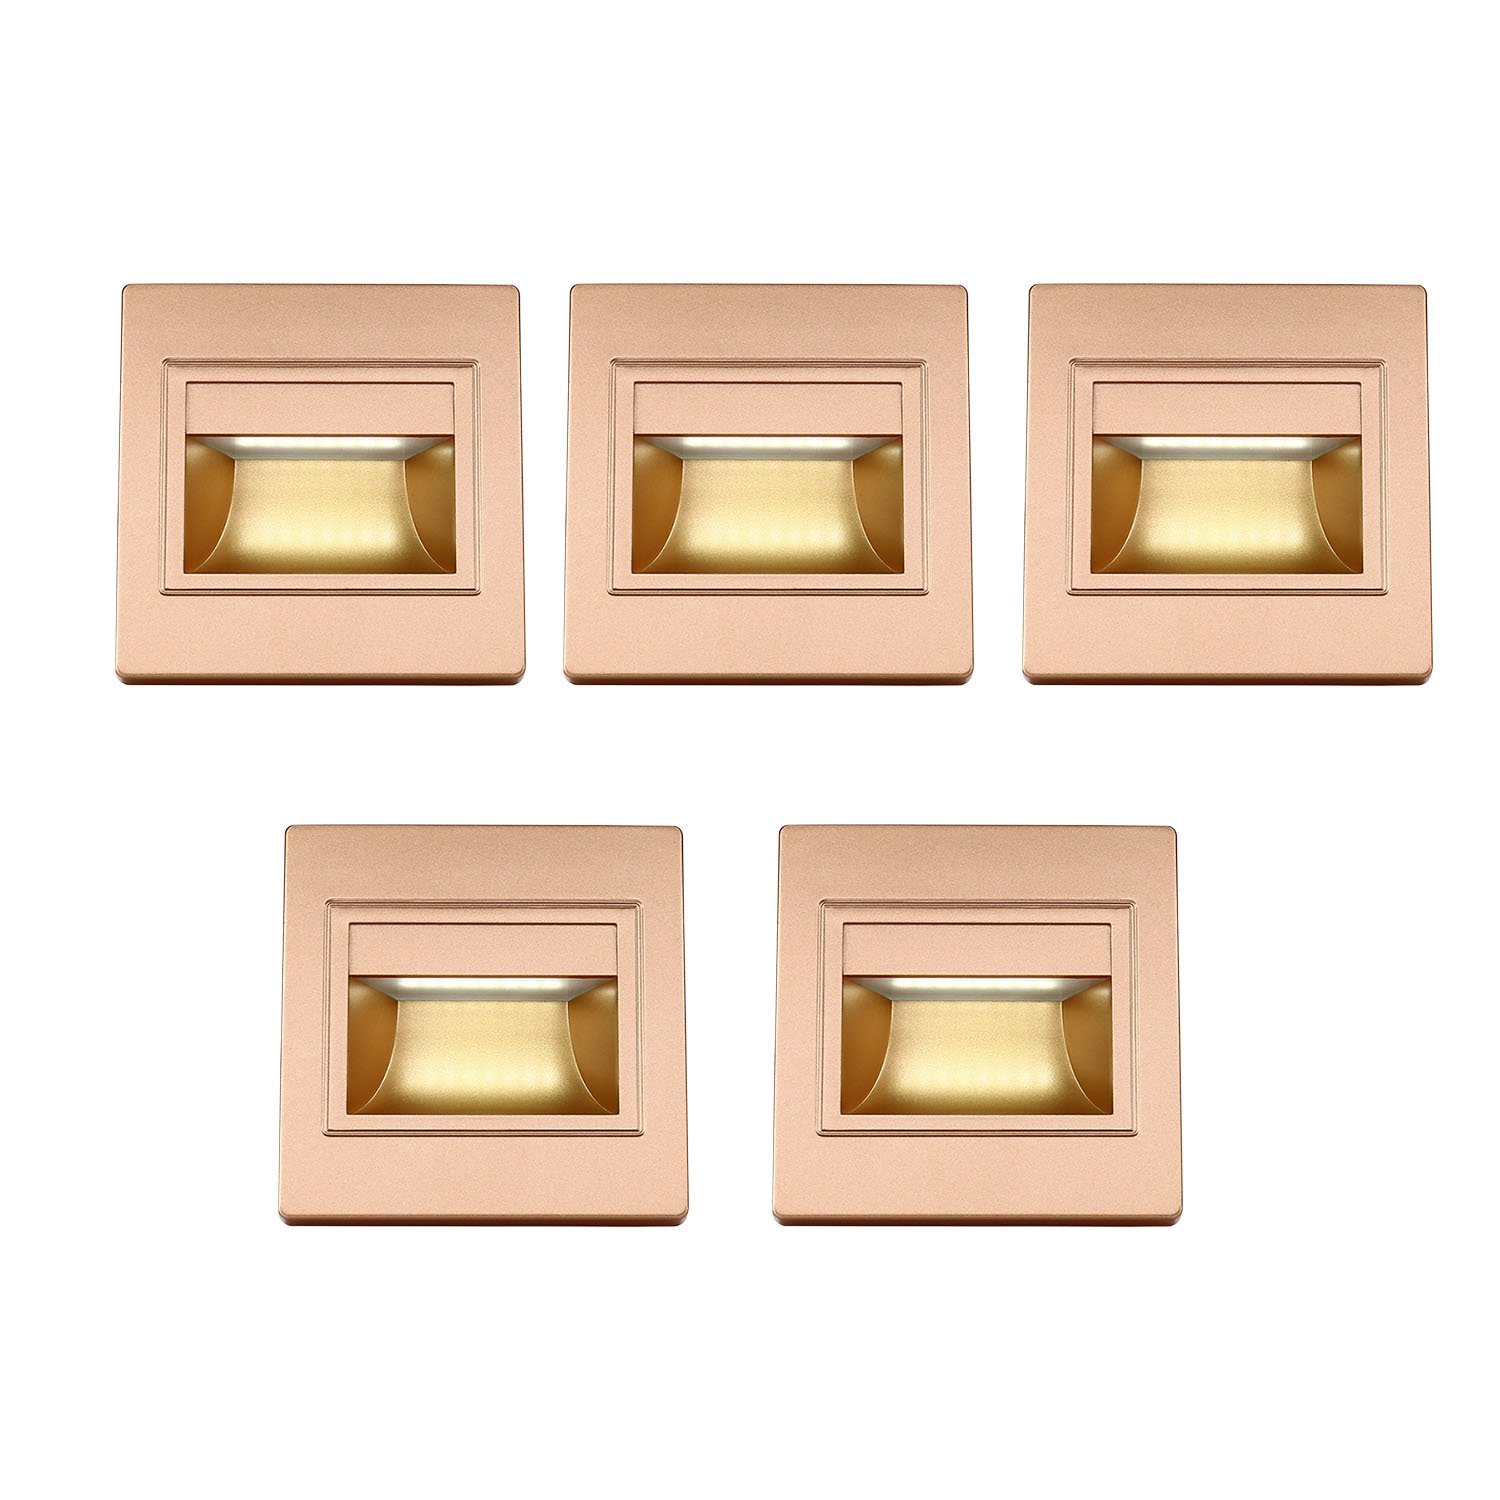 BOLXZHU 5-Pack LED Recessed Stair Light, LED Corner Wall Lamp 85-265V, Embedded LED Stairs Step Night Lighting Hallway, Stairs, Closet, Bedroom